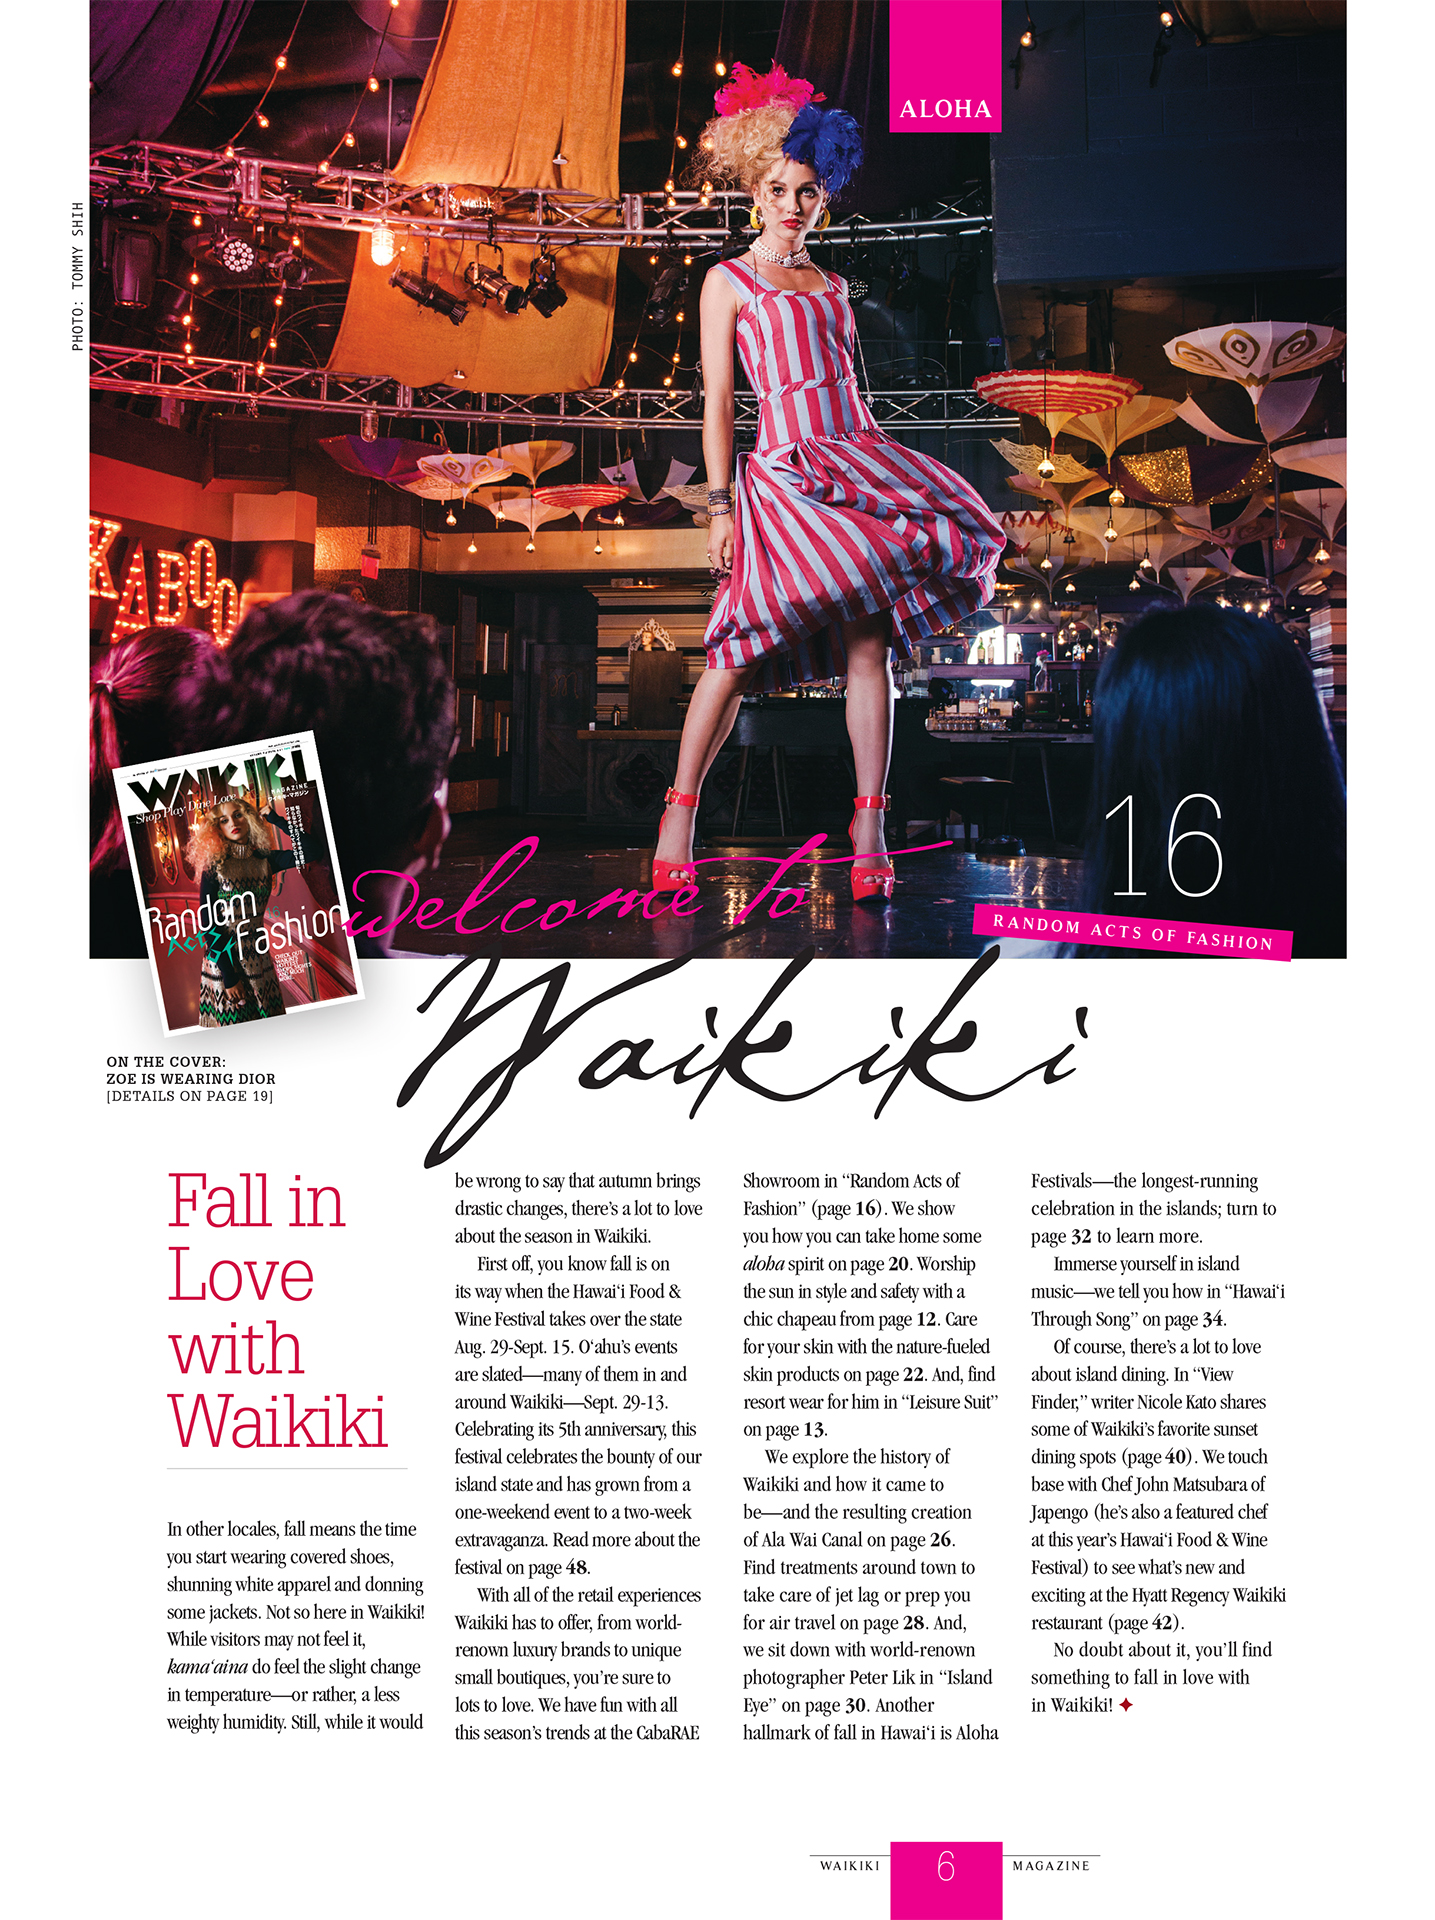 Editor's note page featuring image from Look 3